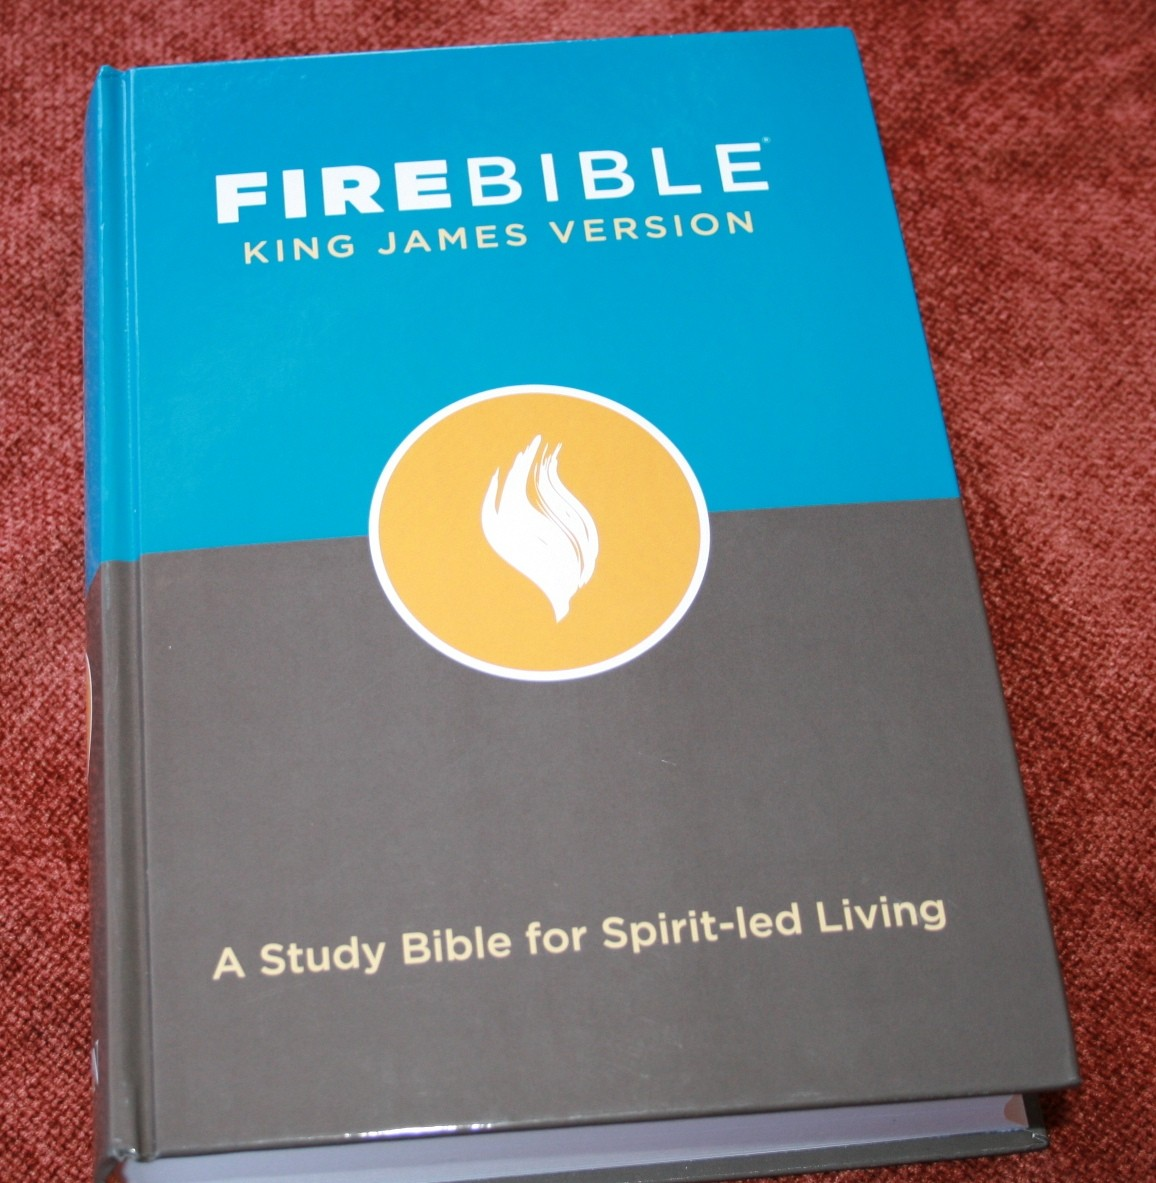 Hendrickson Kjv Fire Bible Review